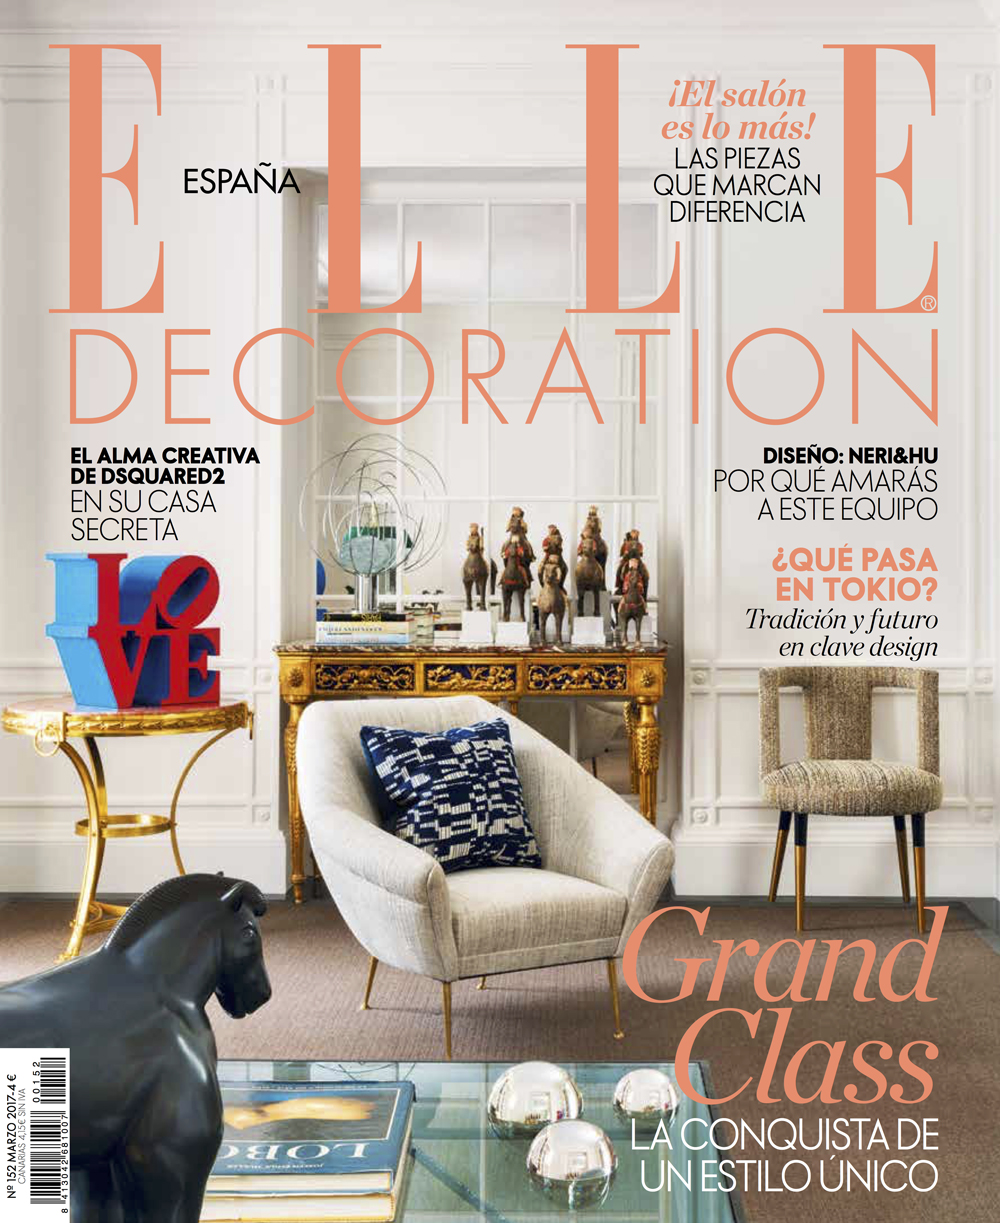 Welcome lamp by AMarist studio at Elle Decoration magazine